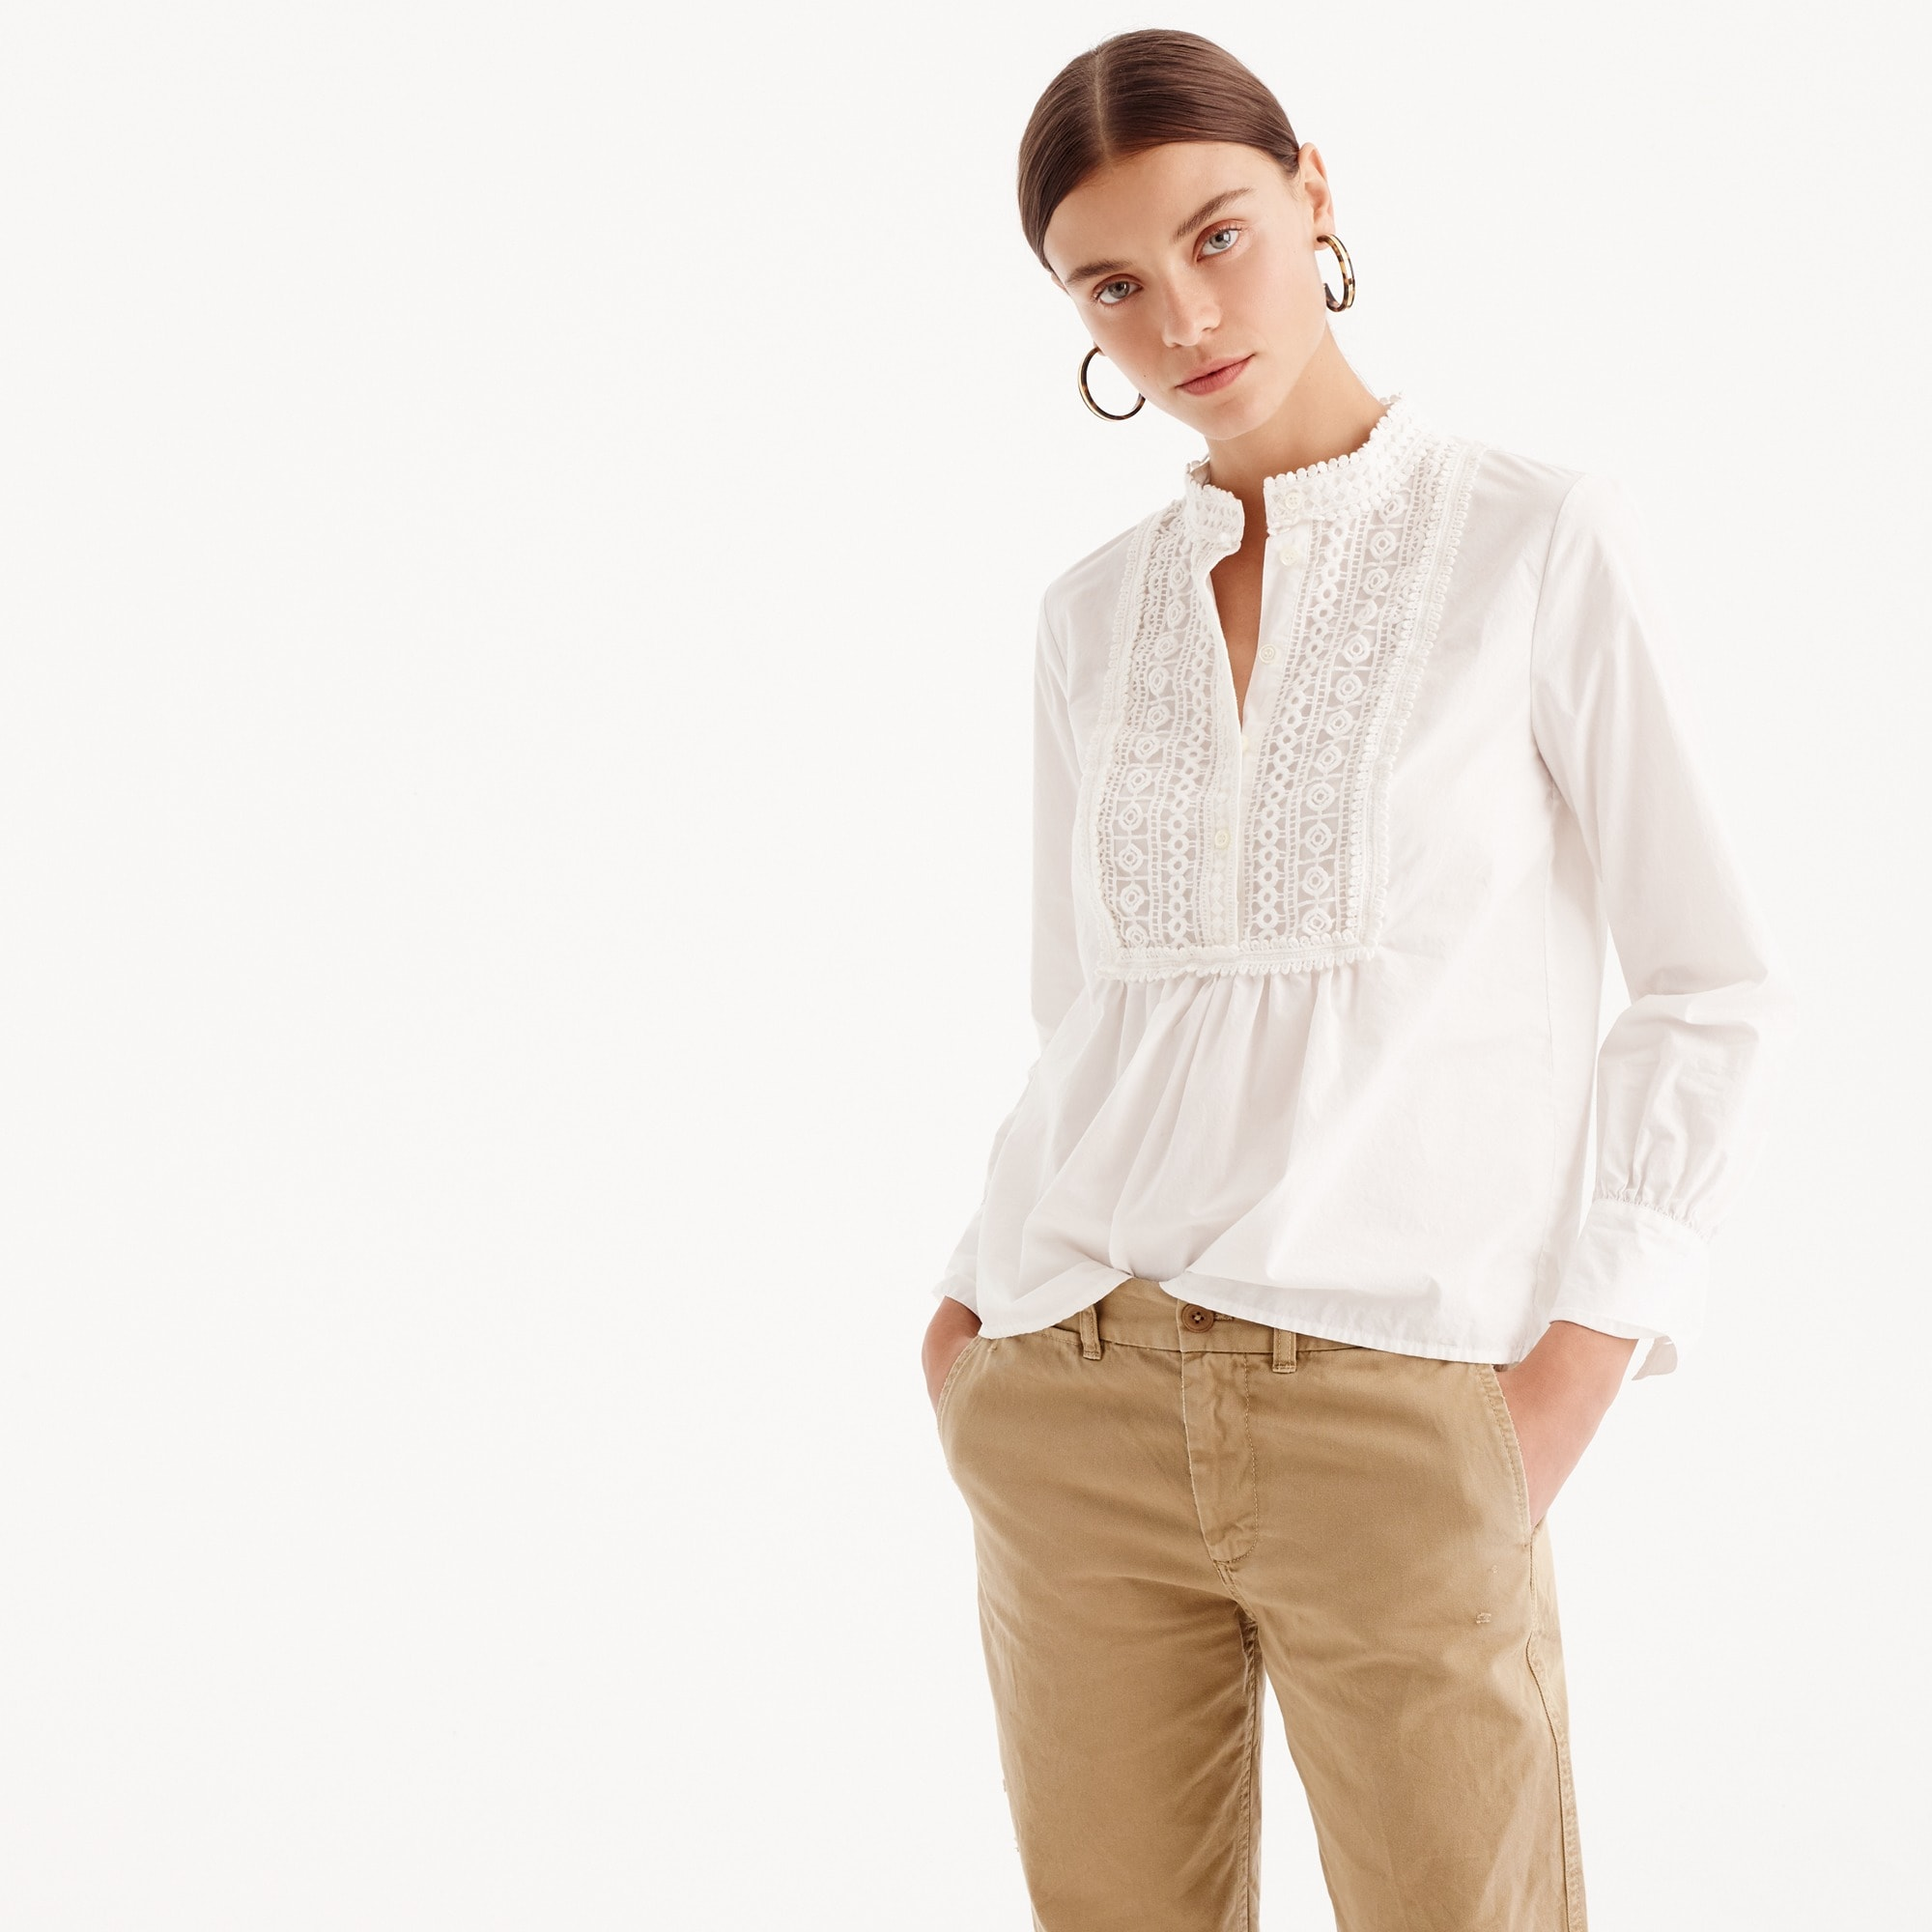 petite popover shirt with lace bib : women shirts & tops